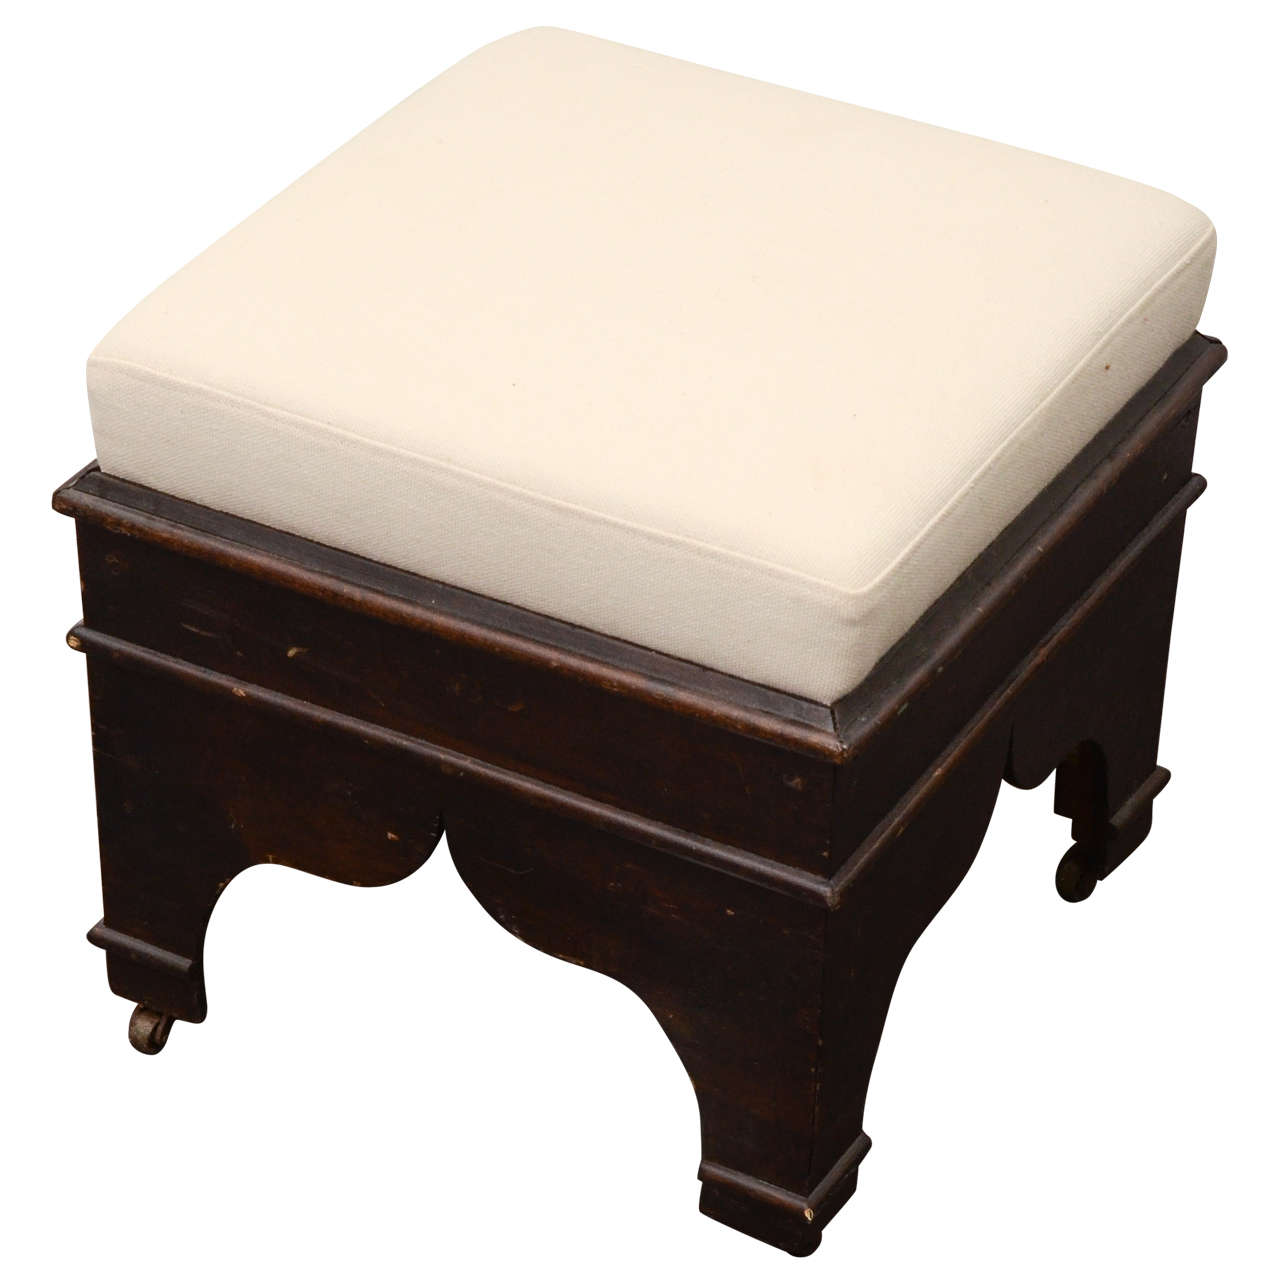 Wooden stool with cream colored upholstery for sale at 1stdibs Cream wooden furniture